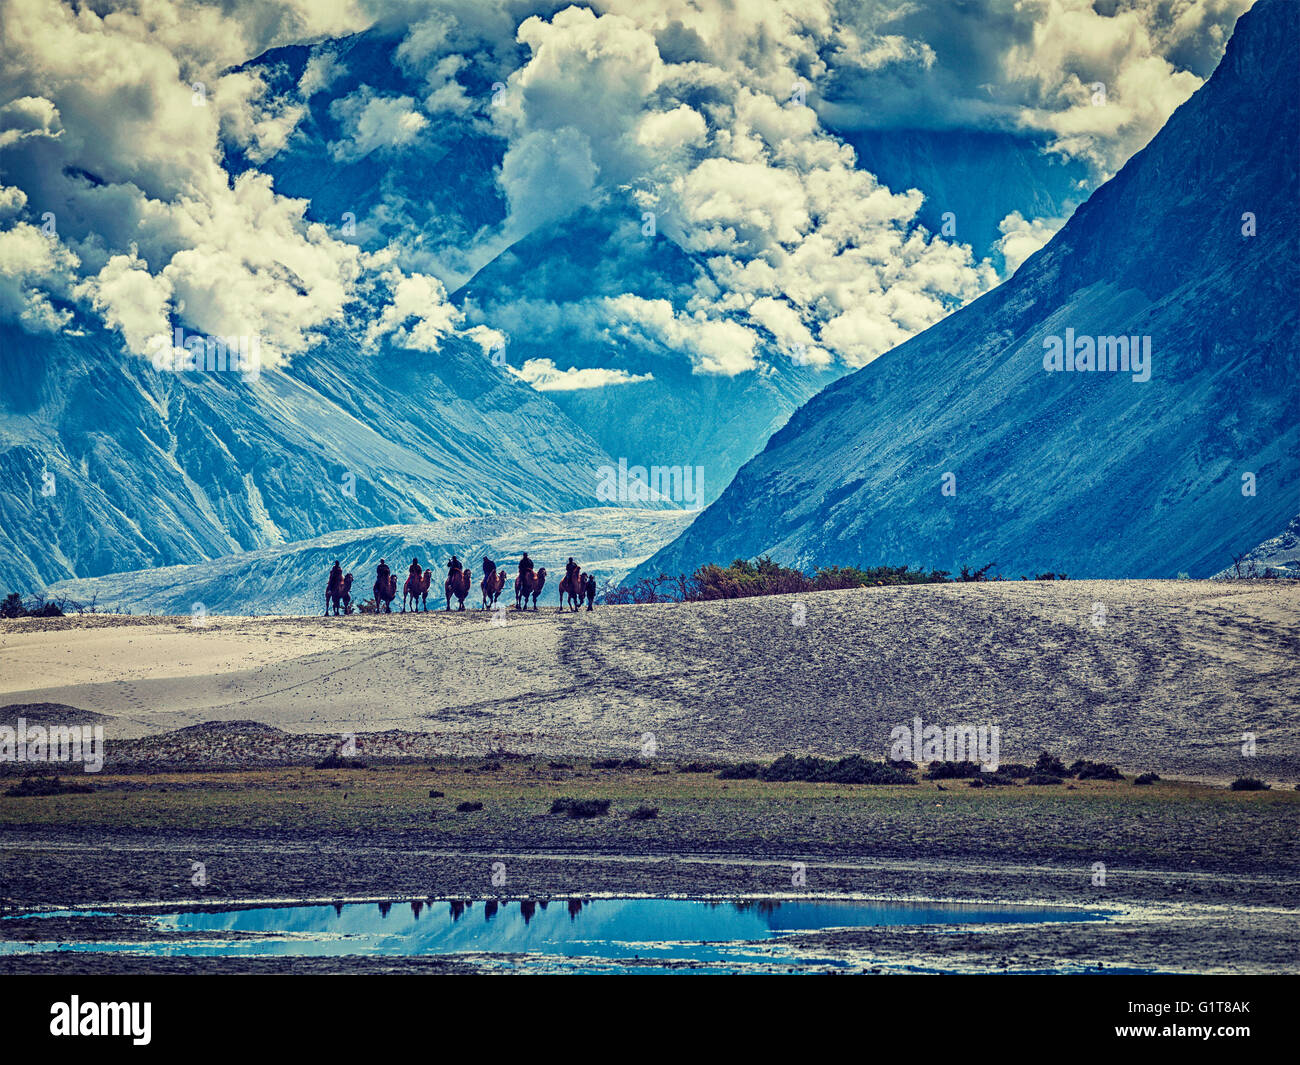 Tourists riding camels in Nubra valley in Himalayas, Ladakh - Stock Image